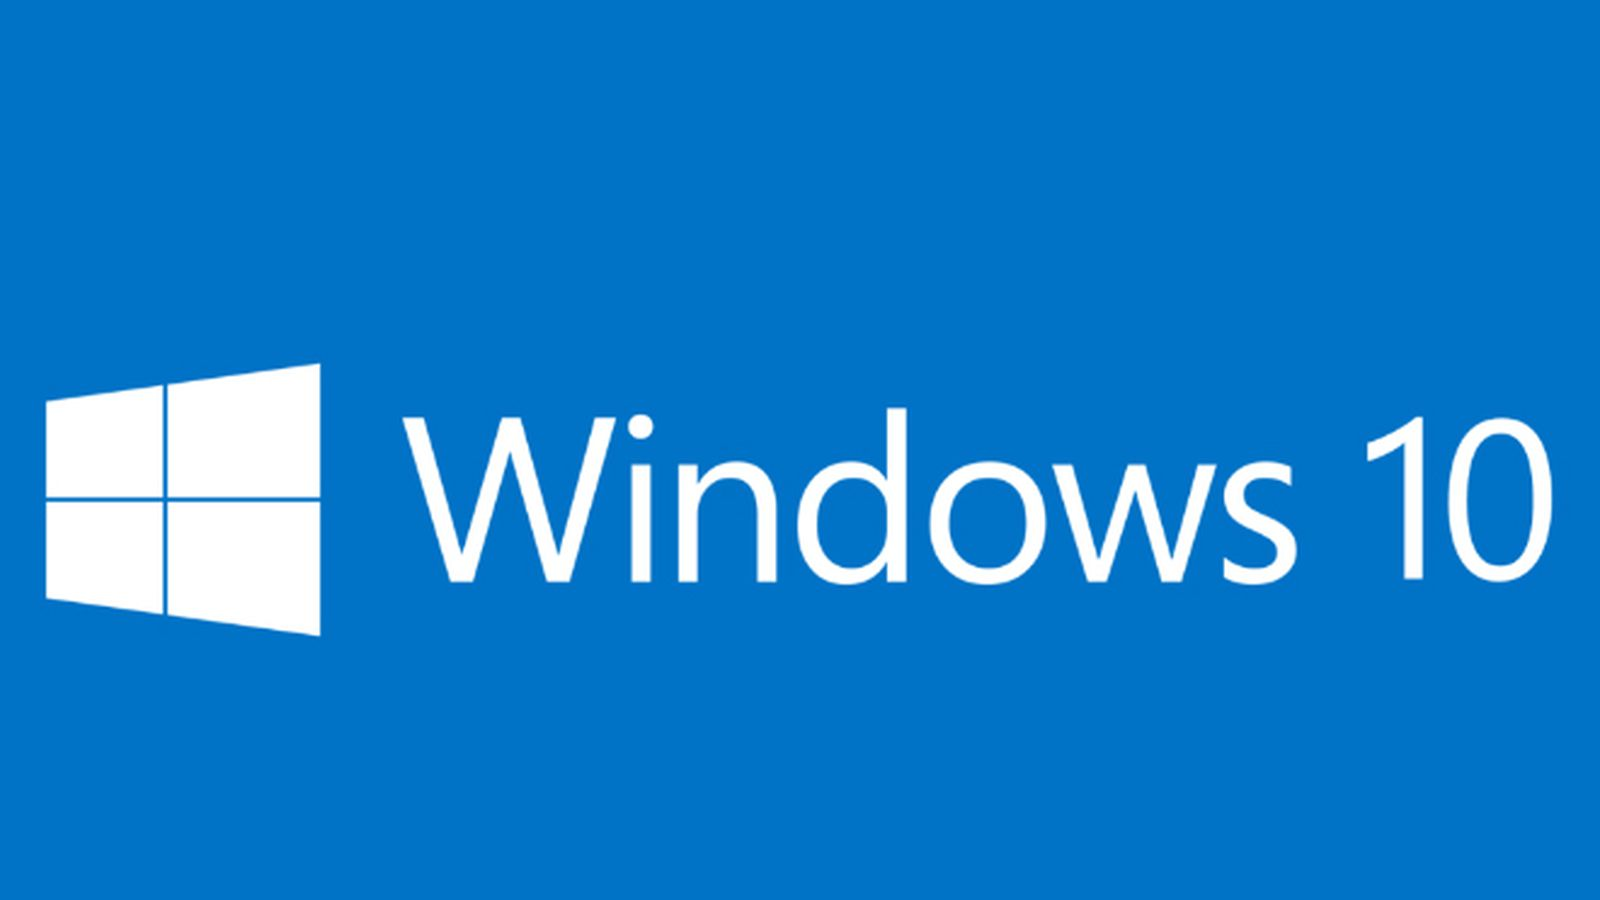 Microsoft is giving away Windows 10 to anyone who tests it ...